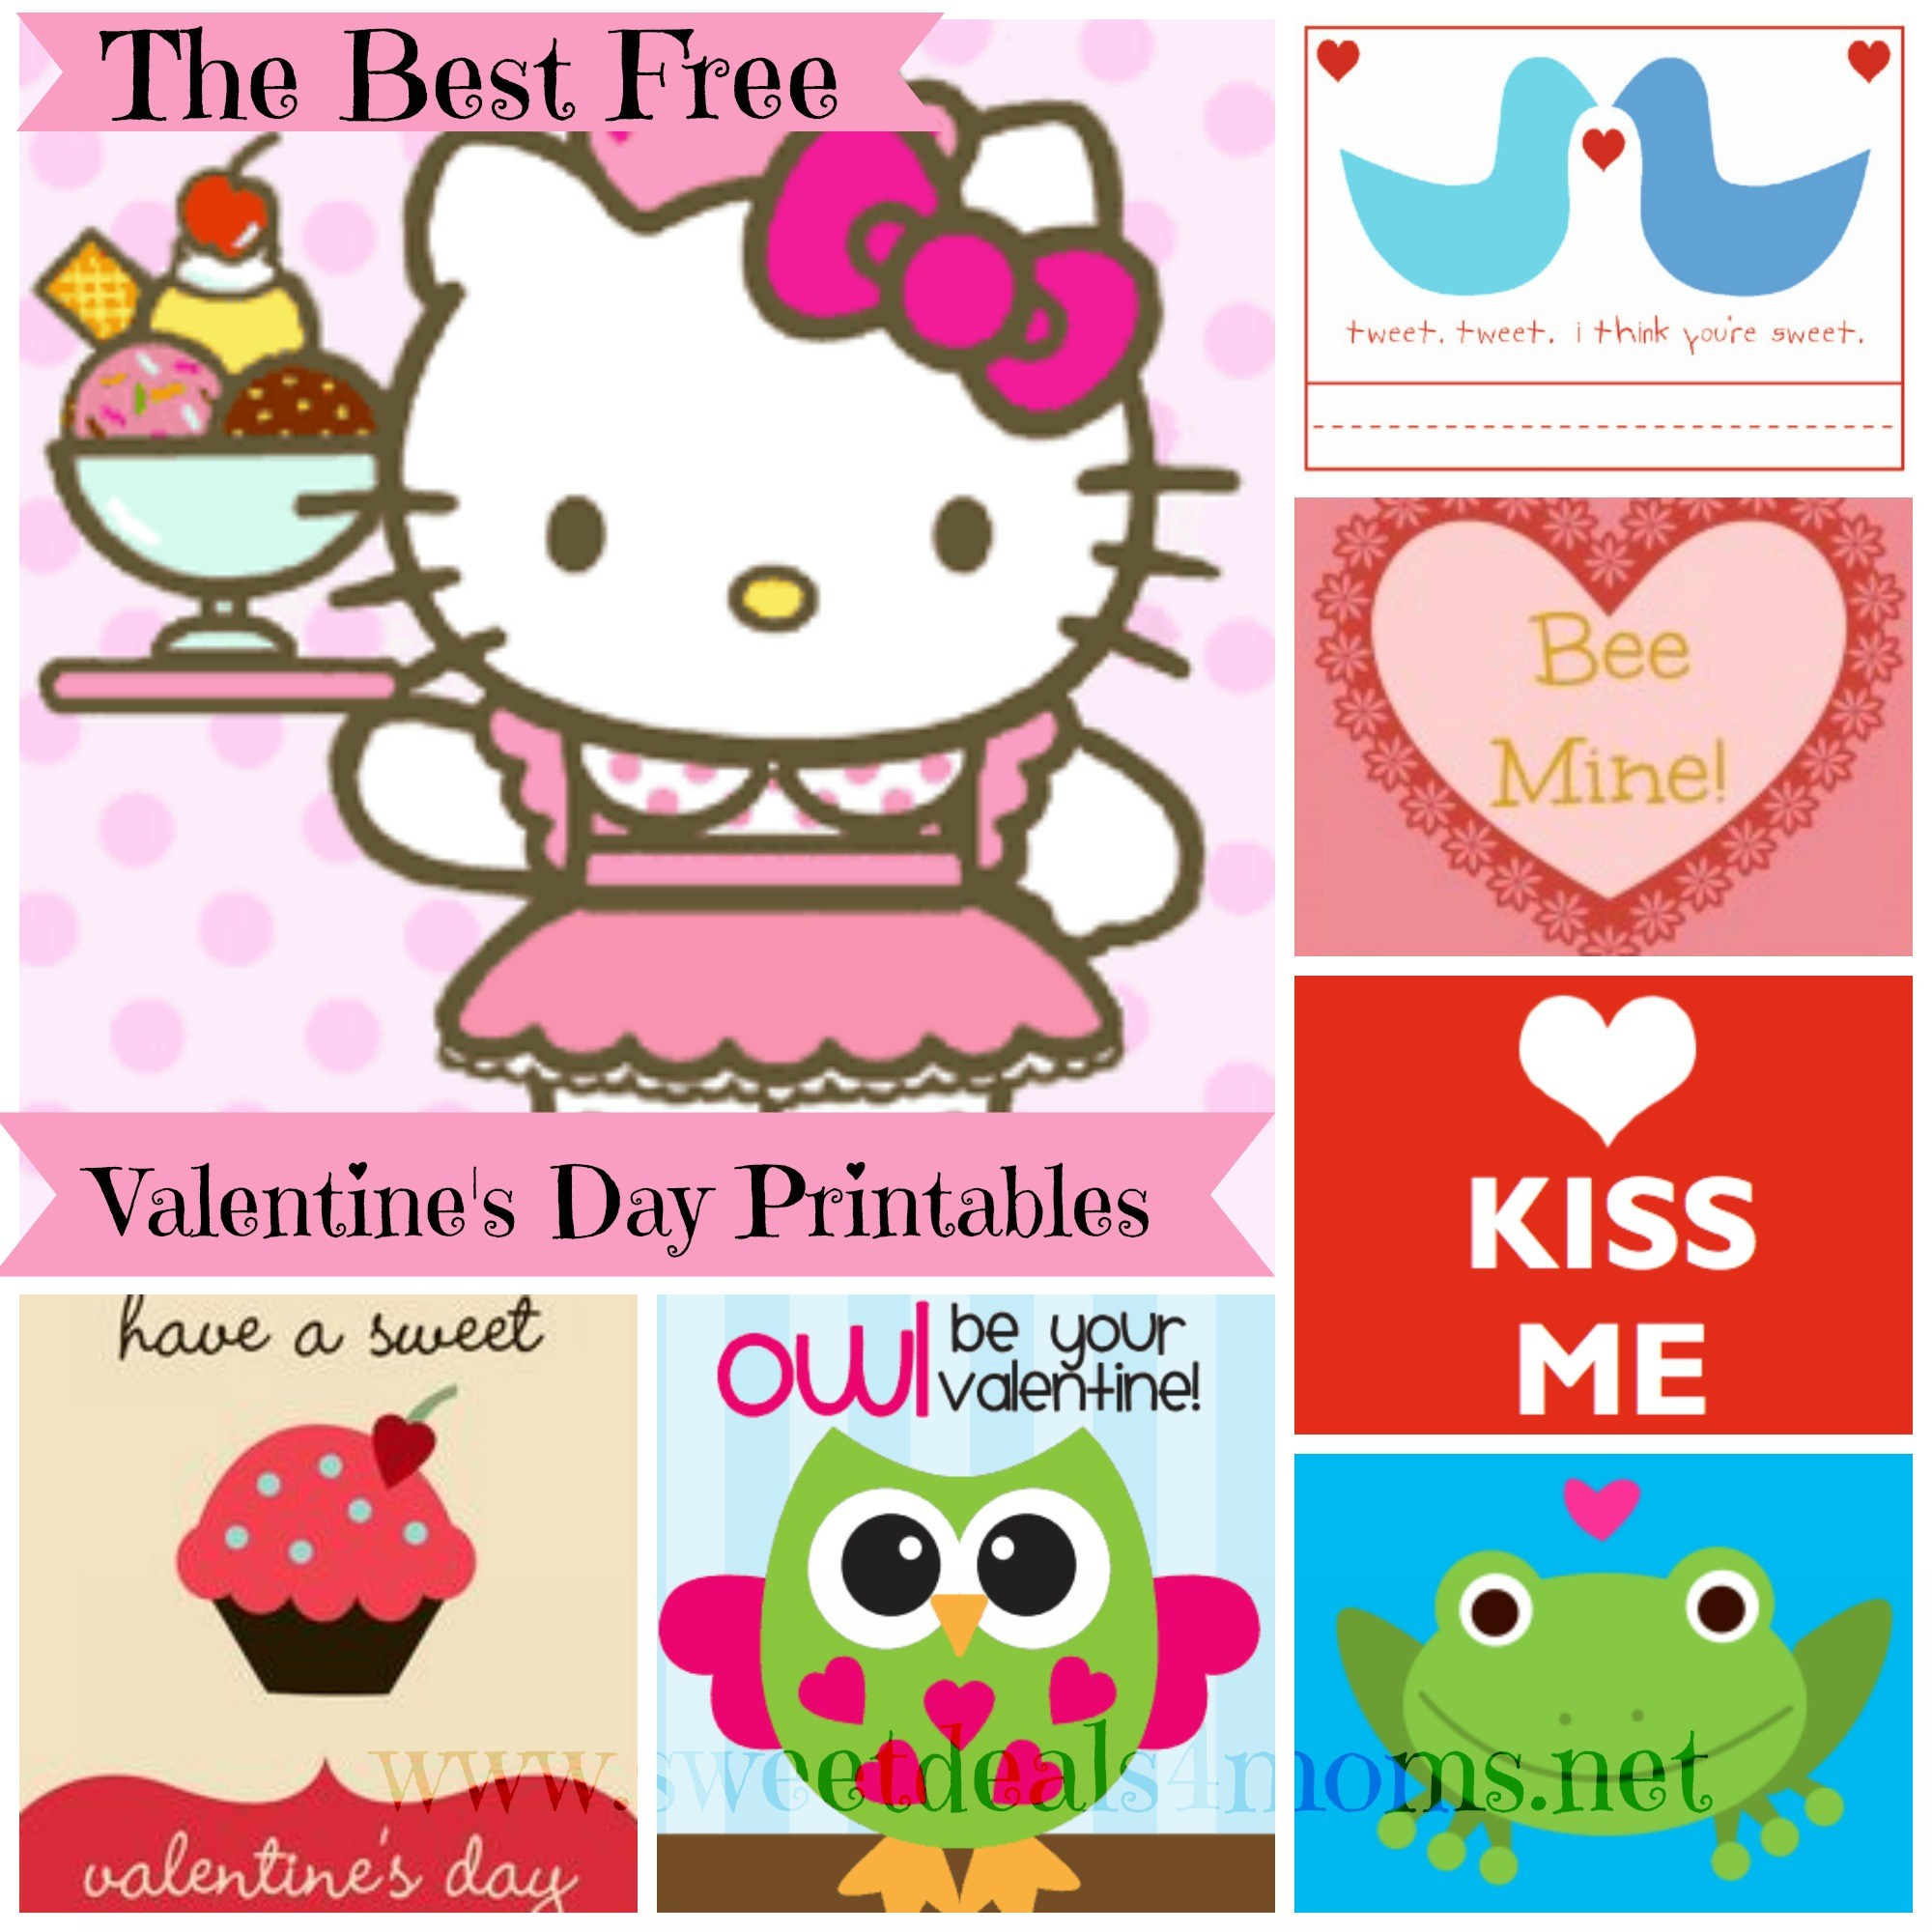 Free Printable Valentines Day Card Roundup - Sweet Deals 4 Moms - Free Printable Valentines Day Cards For Mom And Dad